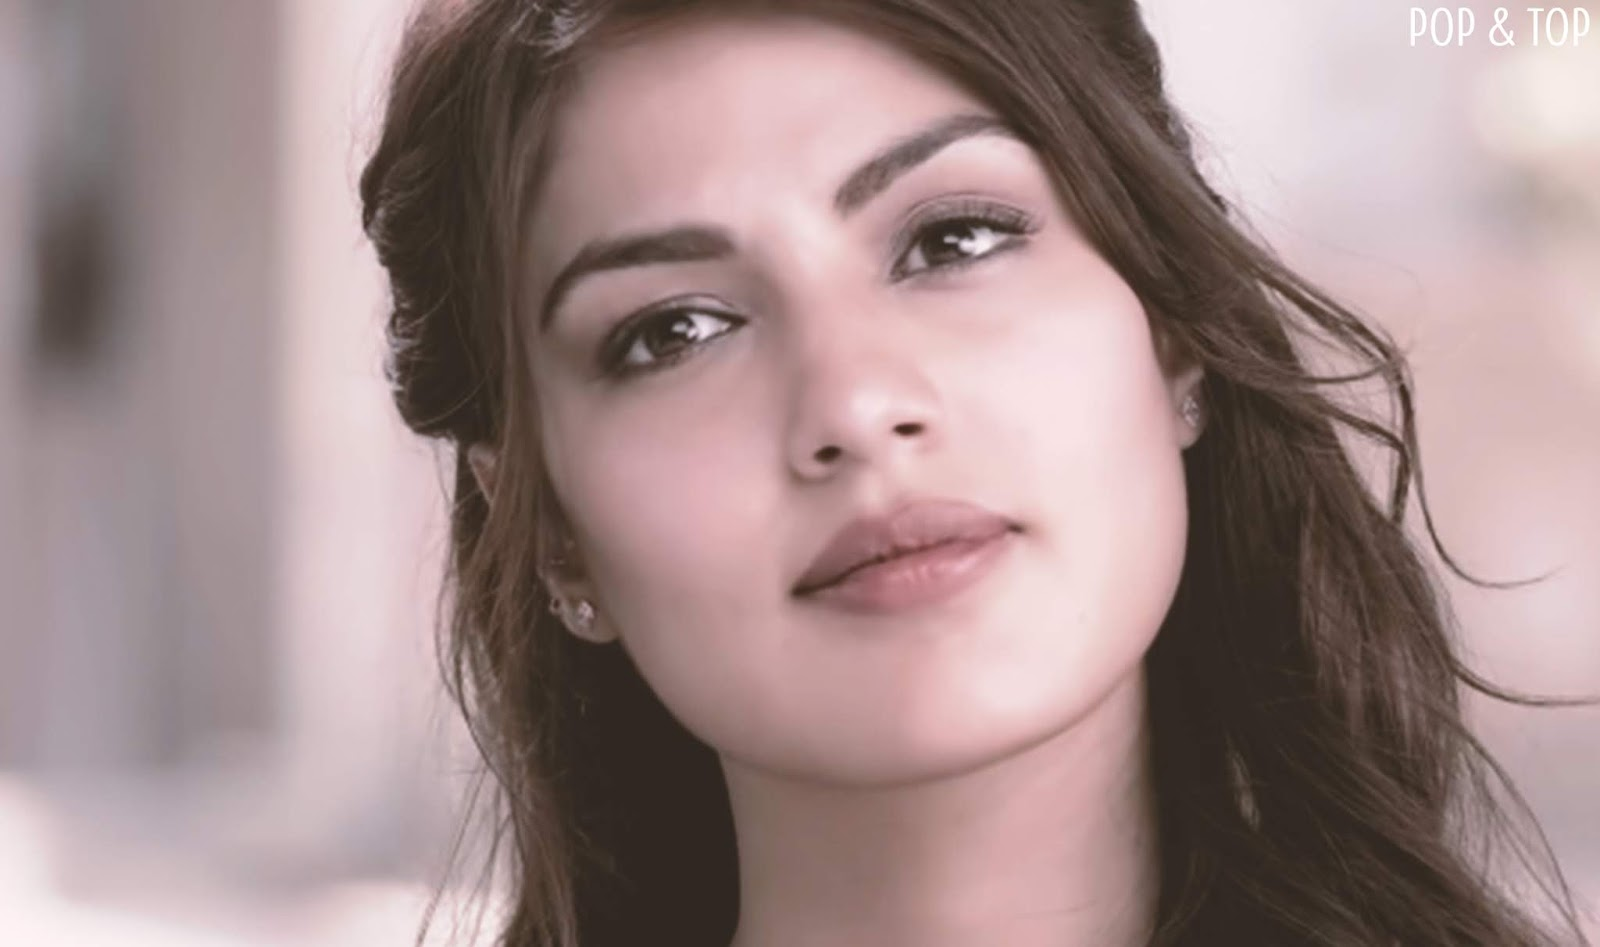 Download Rhea Chakraborty Hd Wallpapers From Jalebi Moive Pop And Top